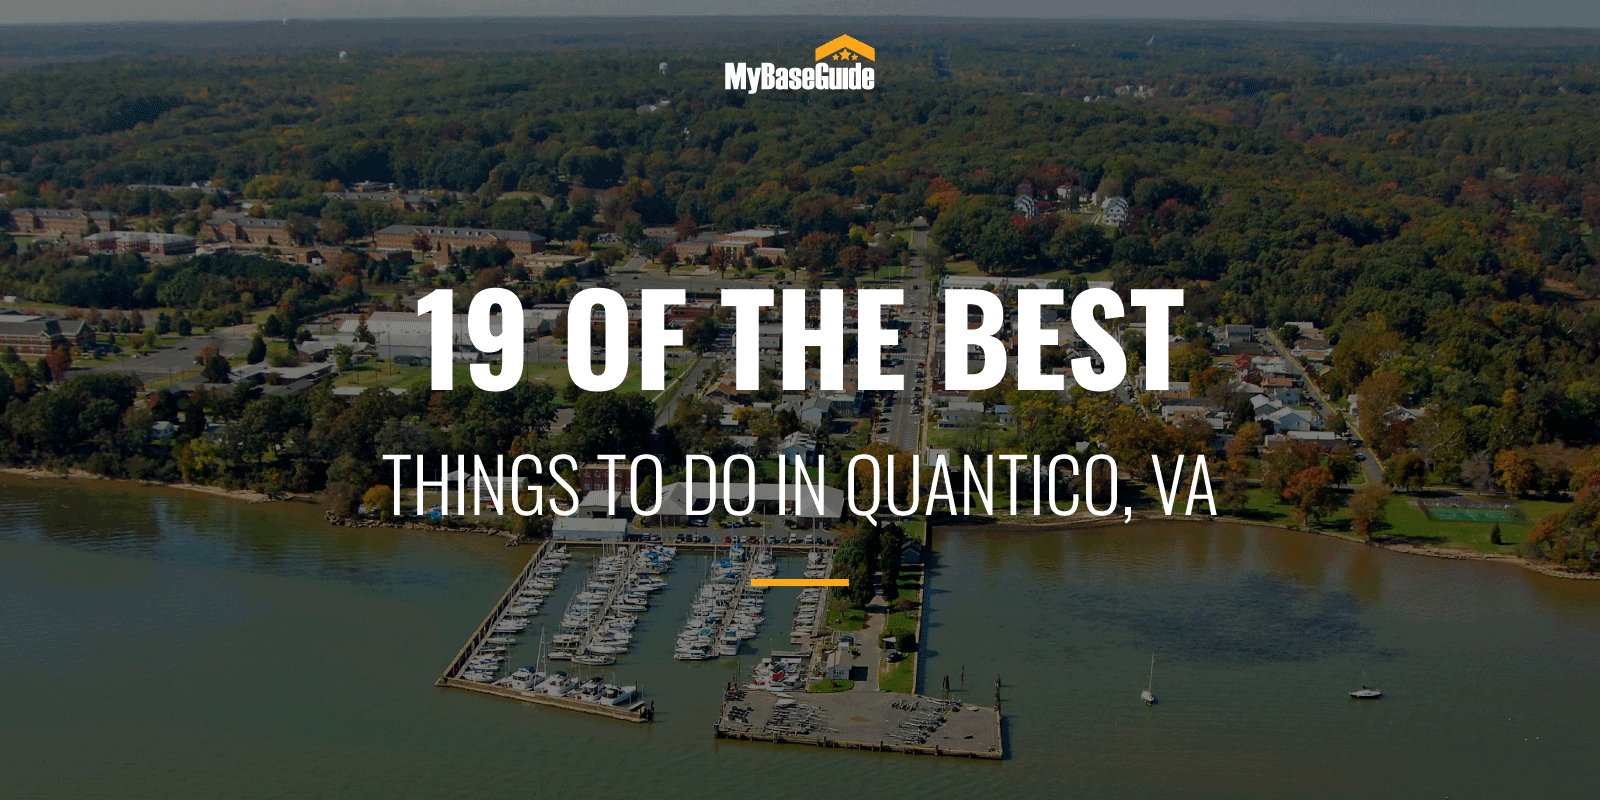 Best Things to DO Quantico